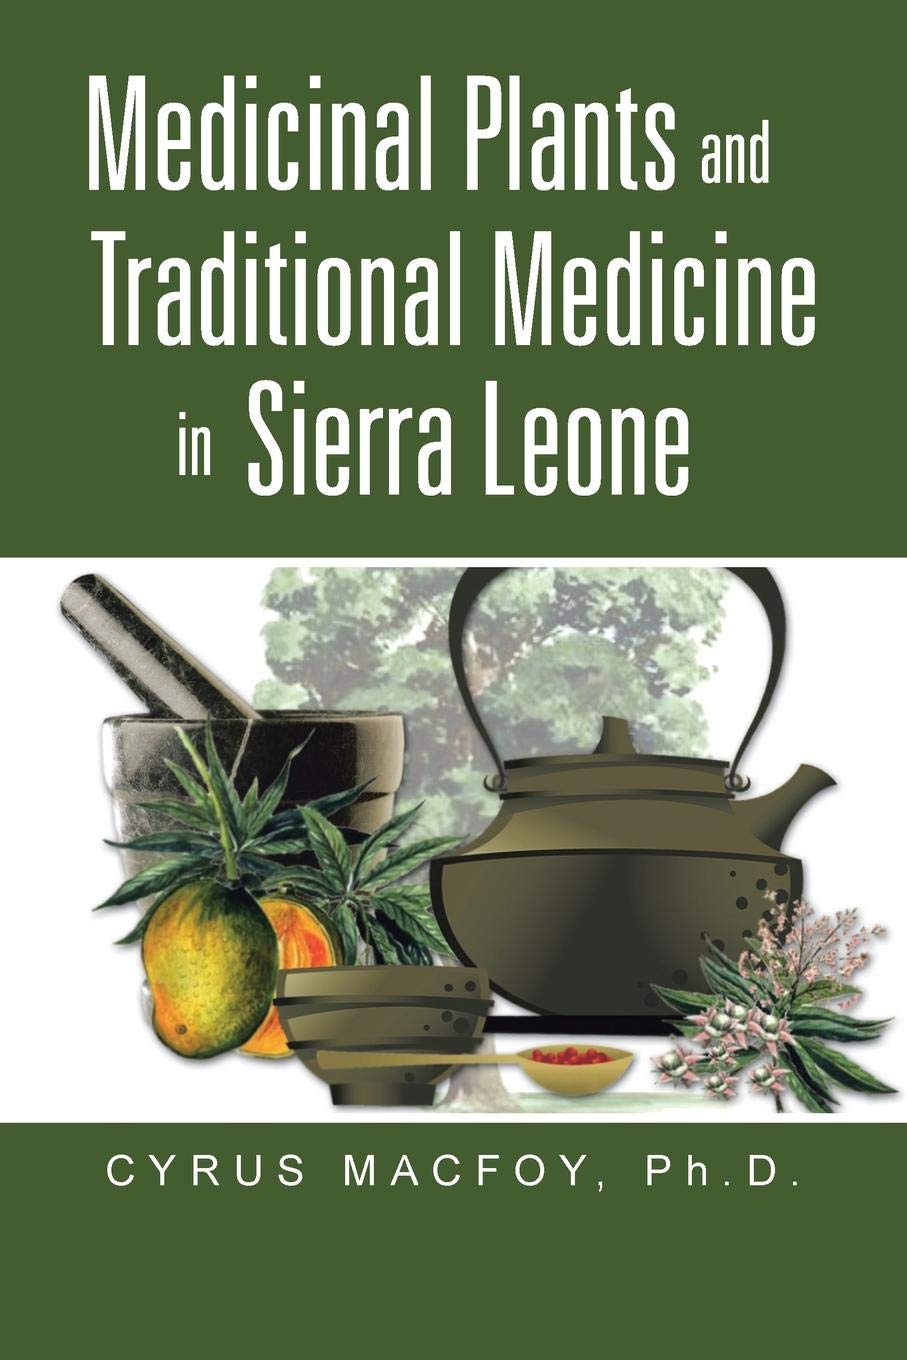 Medicinal Plants and Traditional Medicine in Sierra Leone: Cyrus